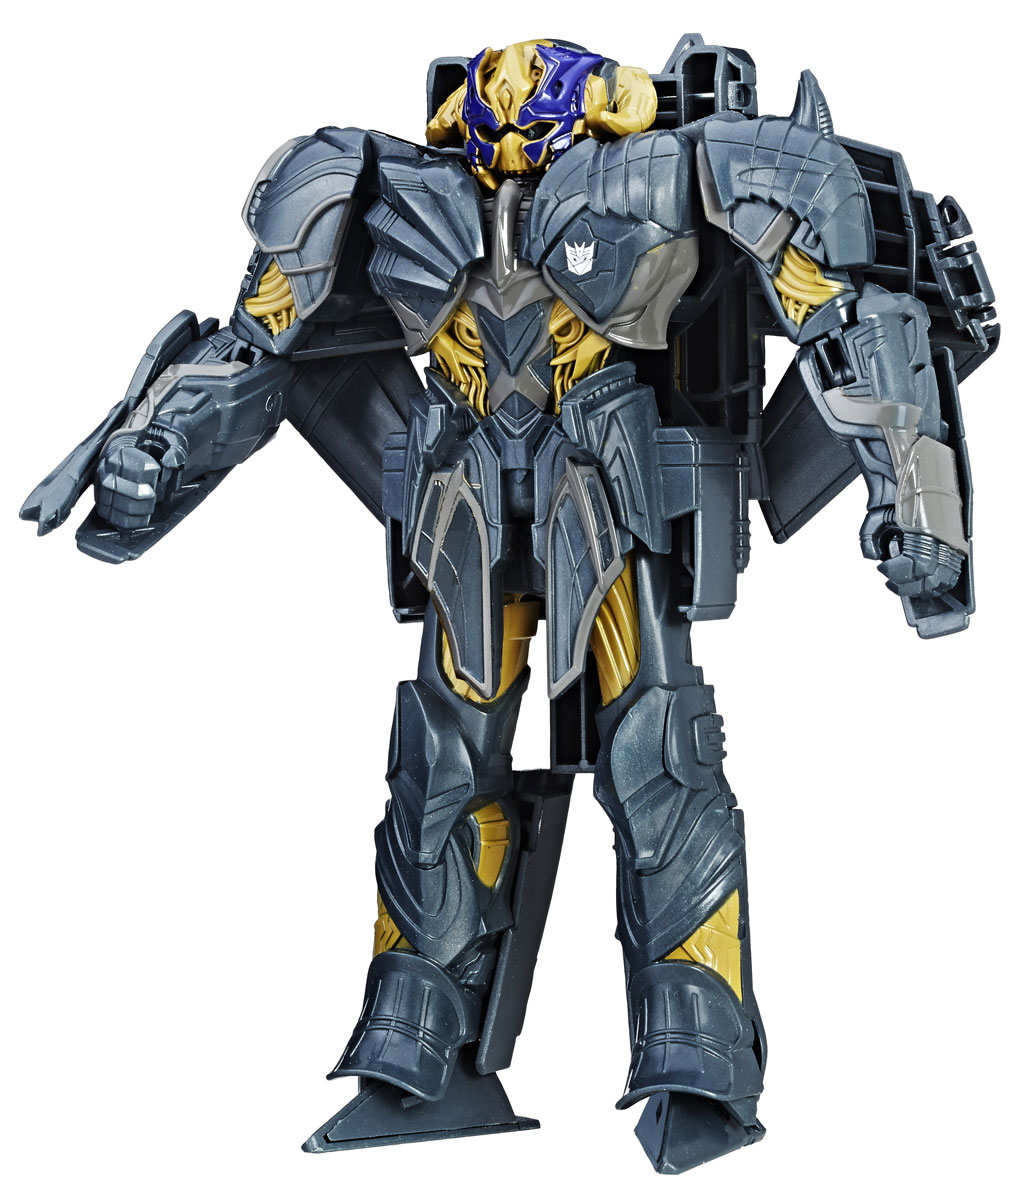 Transformers Трансформер The Last Knight Megatron Turbo Changer transformers трансформер combiner force bumblebee